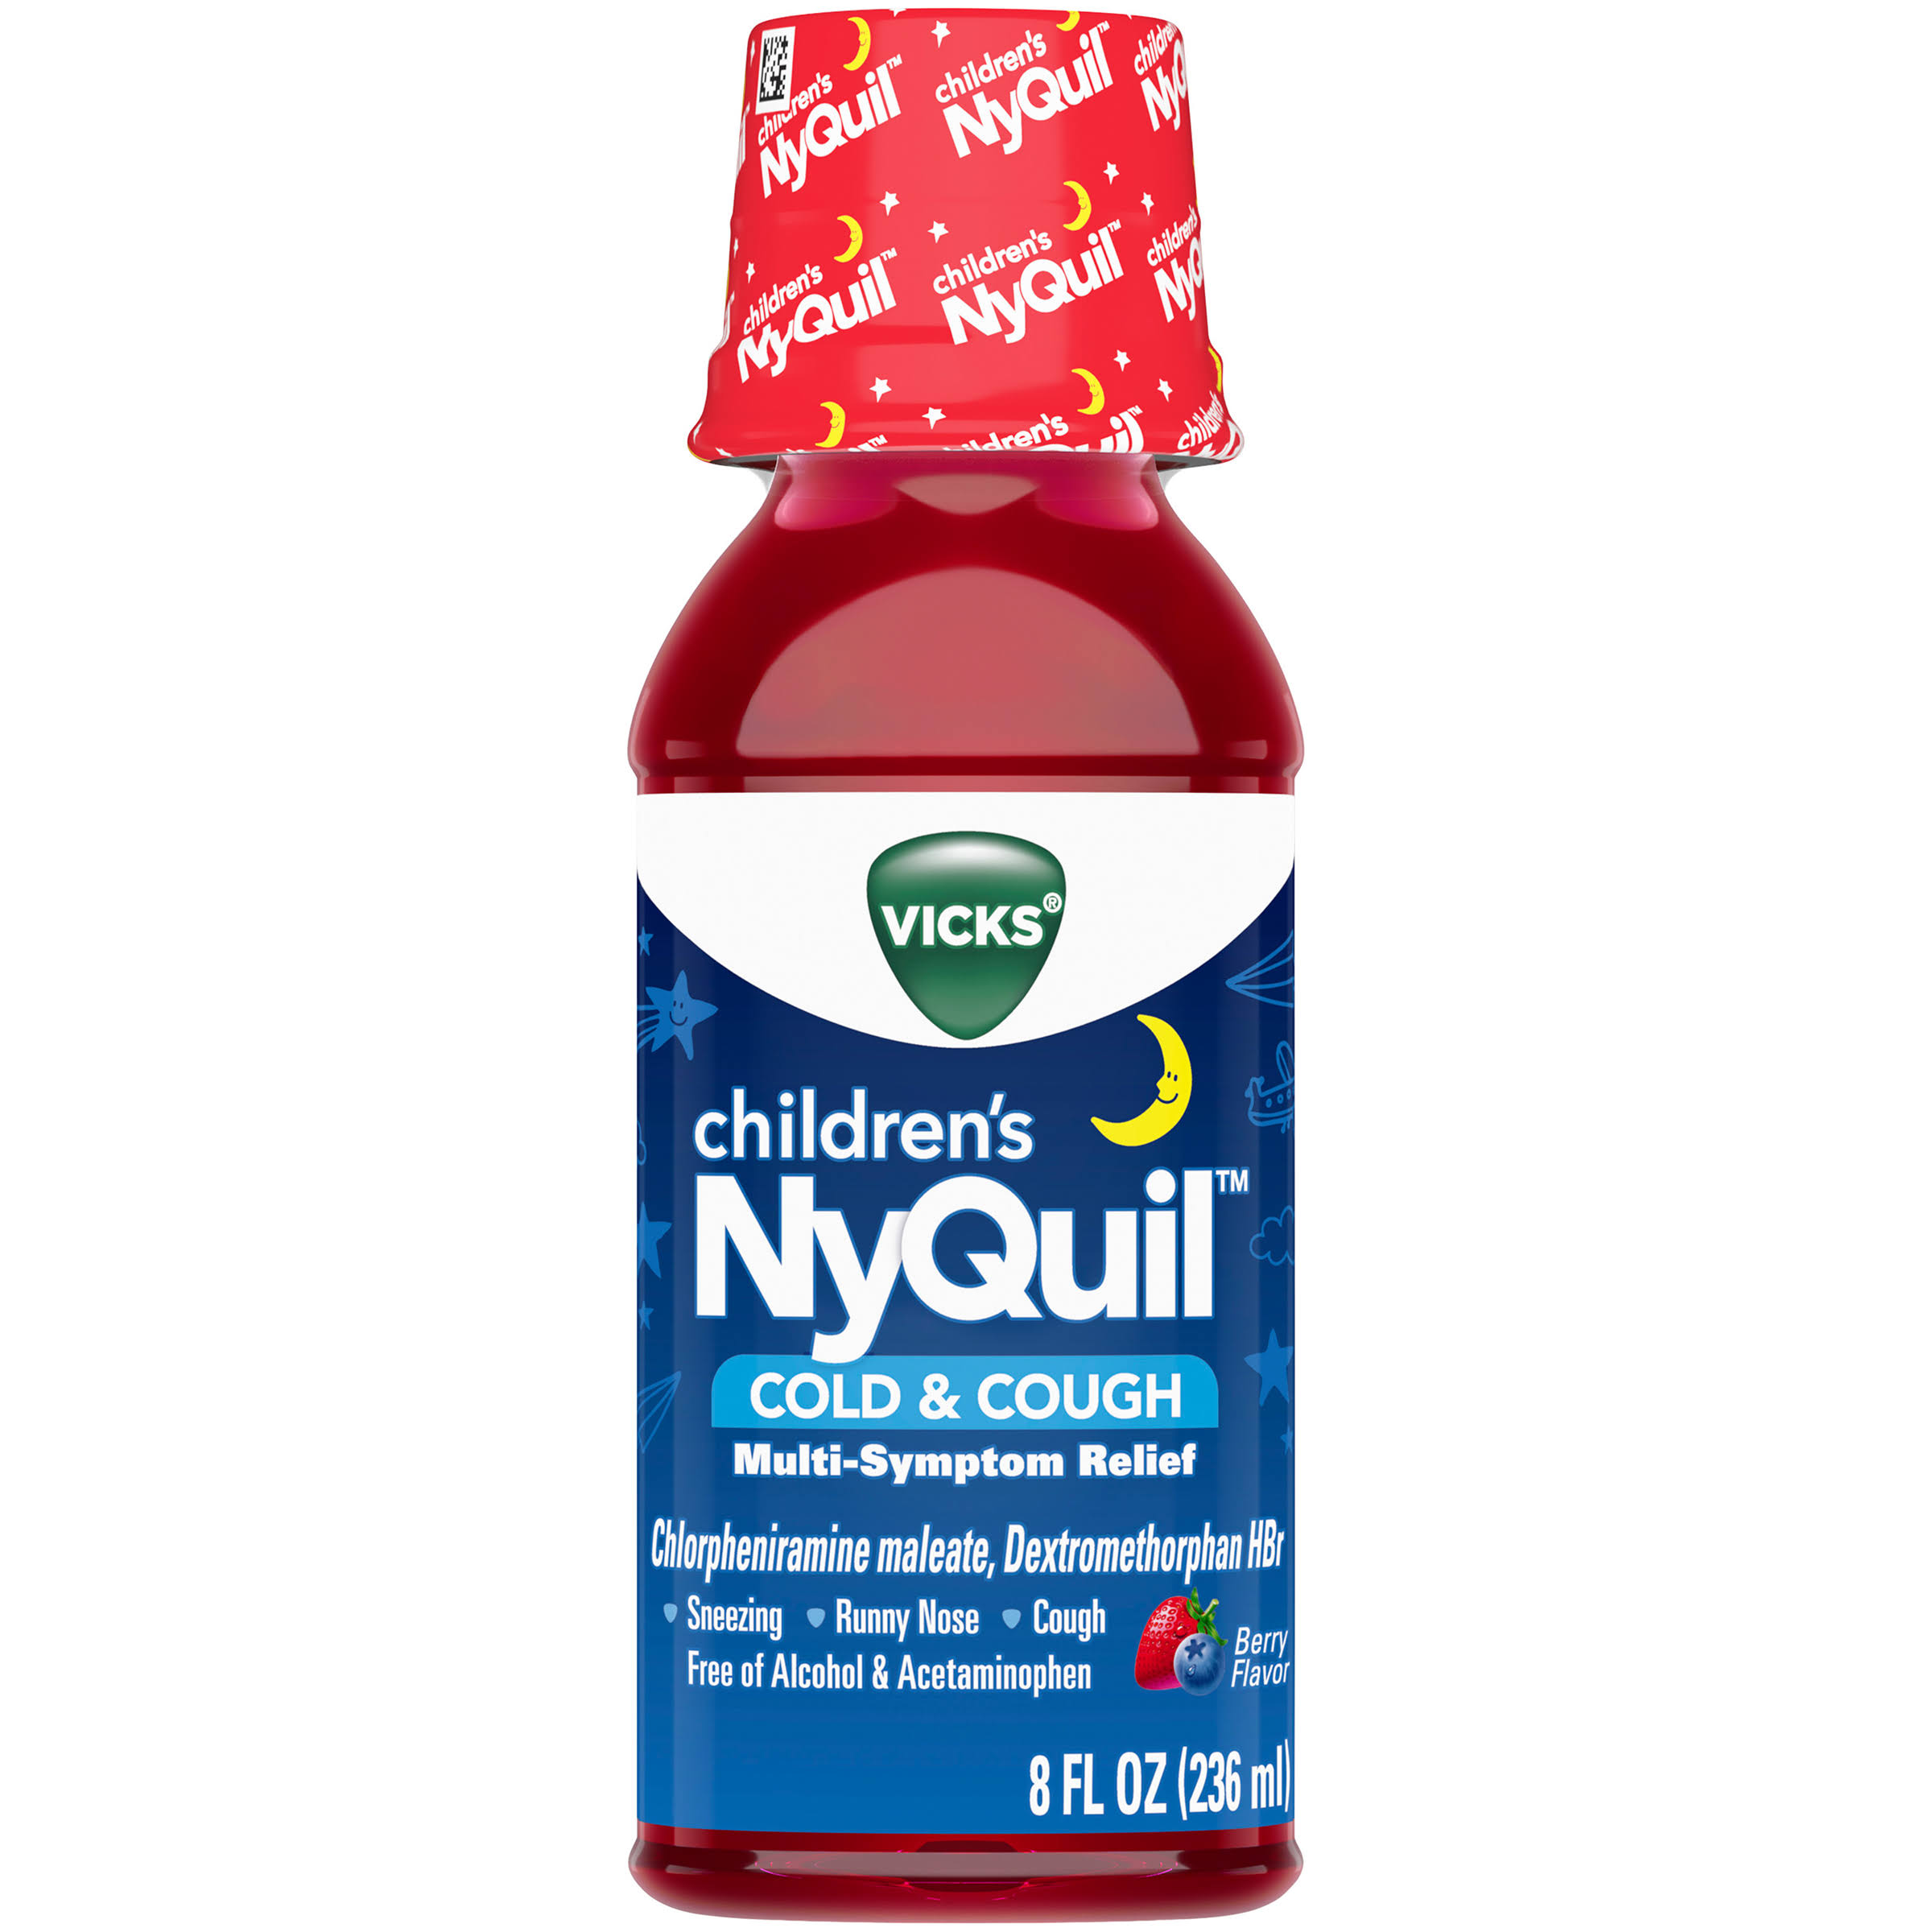 Vicks Children's NyQuil Cold & Cough Relief Medicine - 8oz, Cherry Flavor